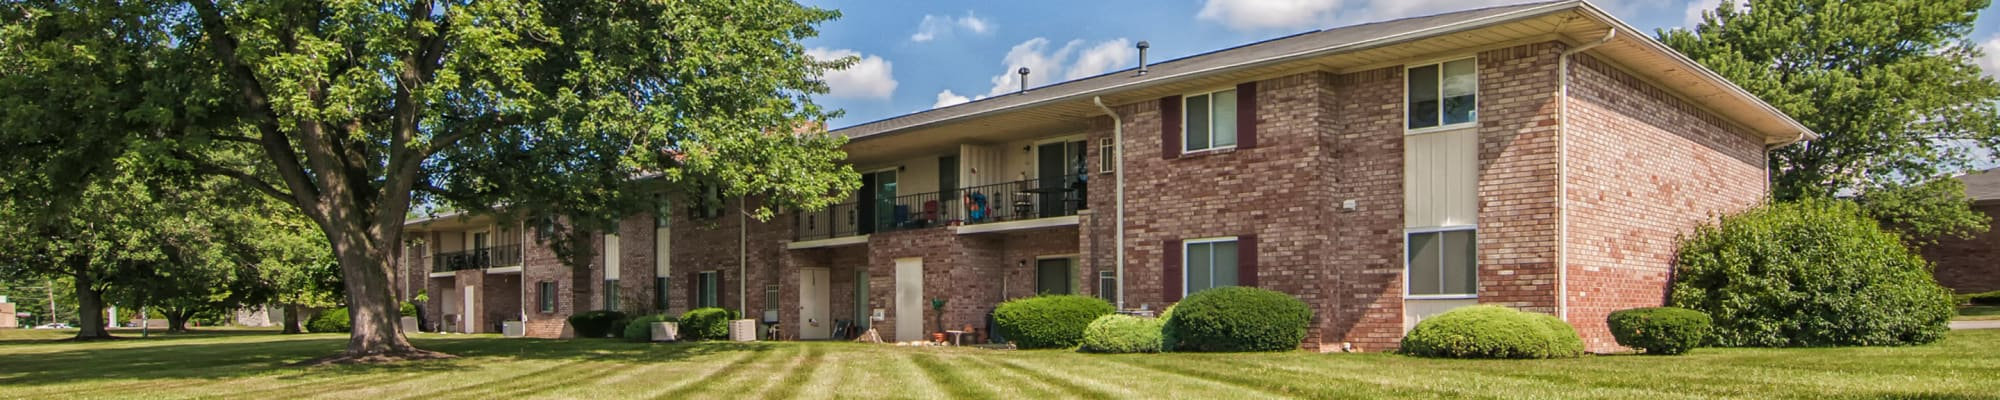 Join Our Team at Beech Meadow in Beech Grove, Indiana